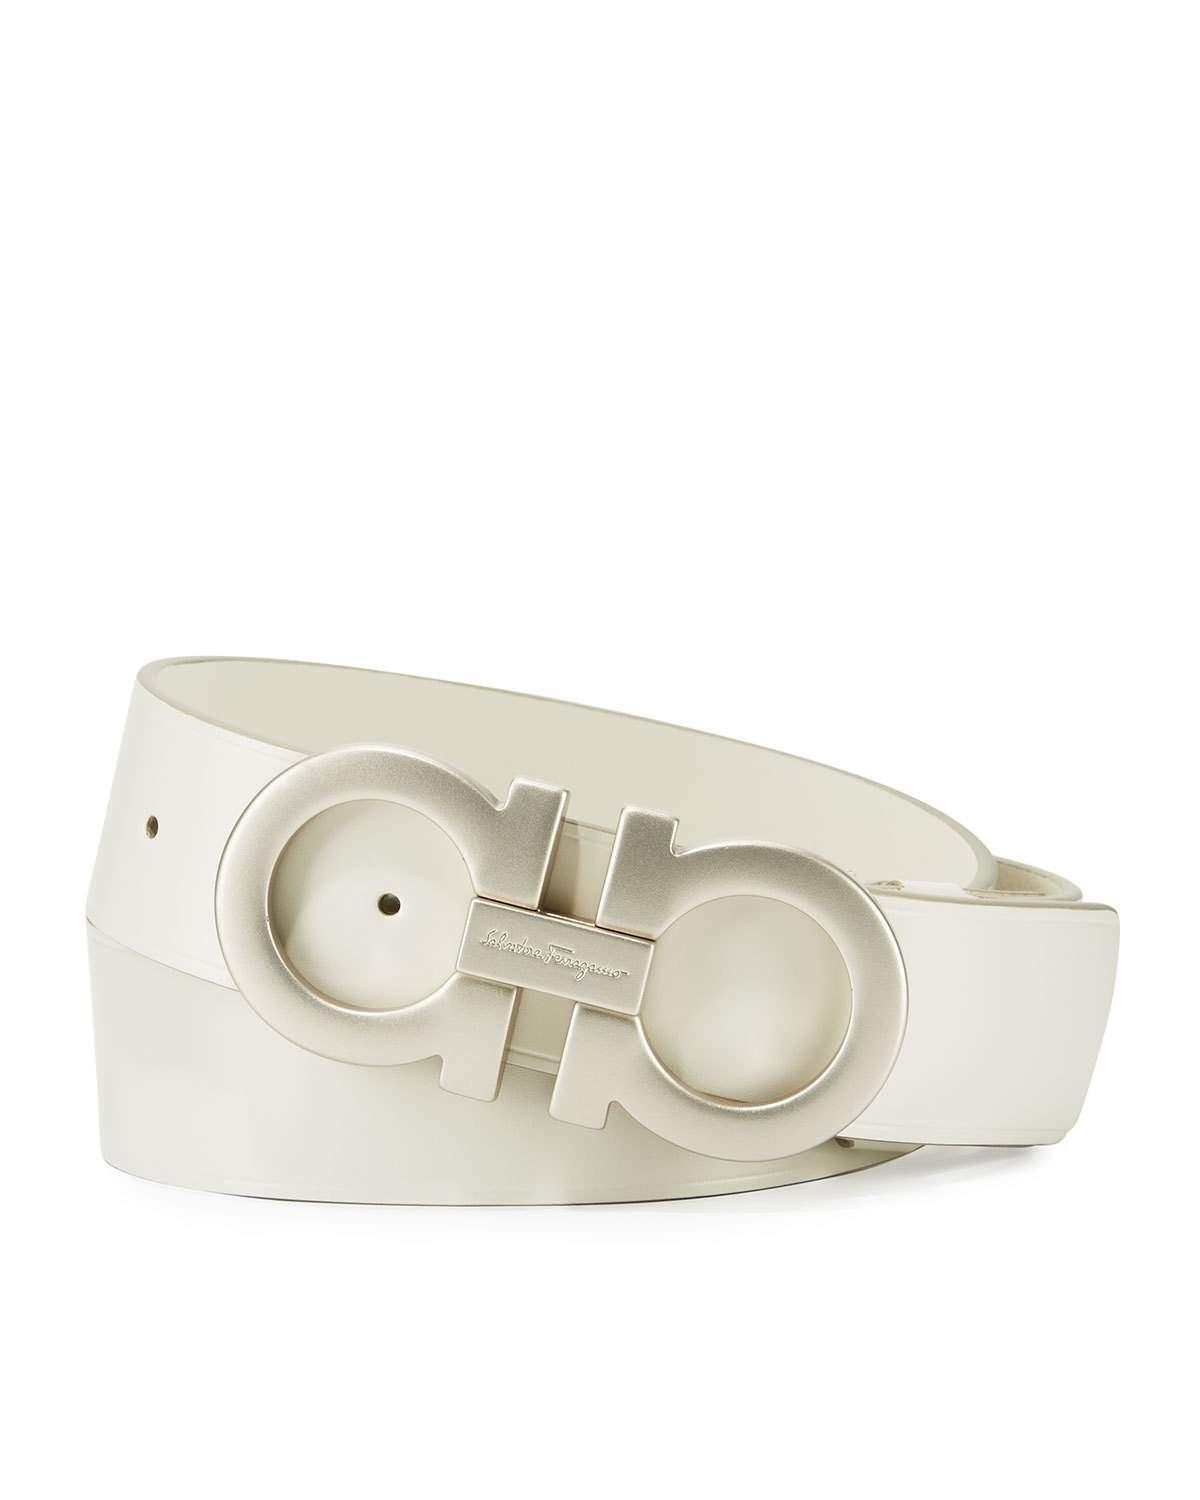 4d94a434239a8 switzerland salvatore ferragamo double gancino belt black b6946 de9f9   wholesale lyst ferragamo tonal double gancini buckle belt in white 26d09  36946